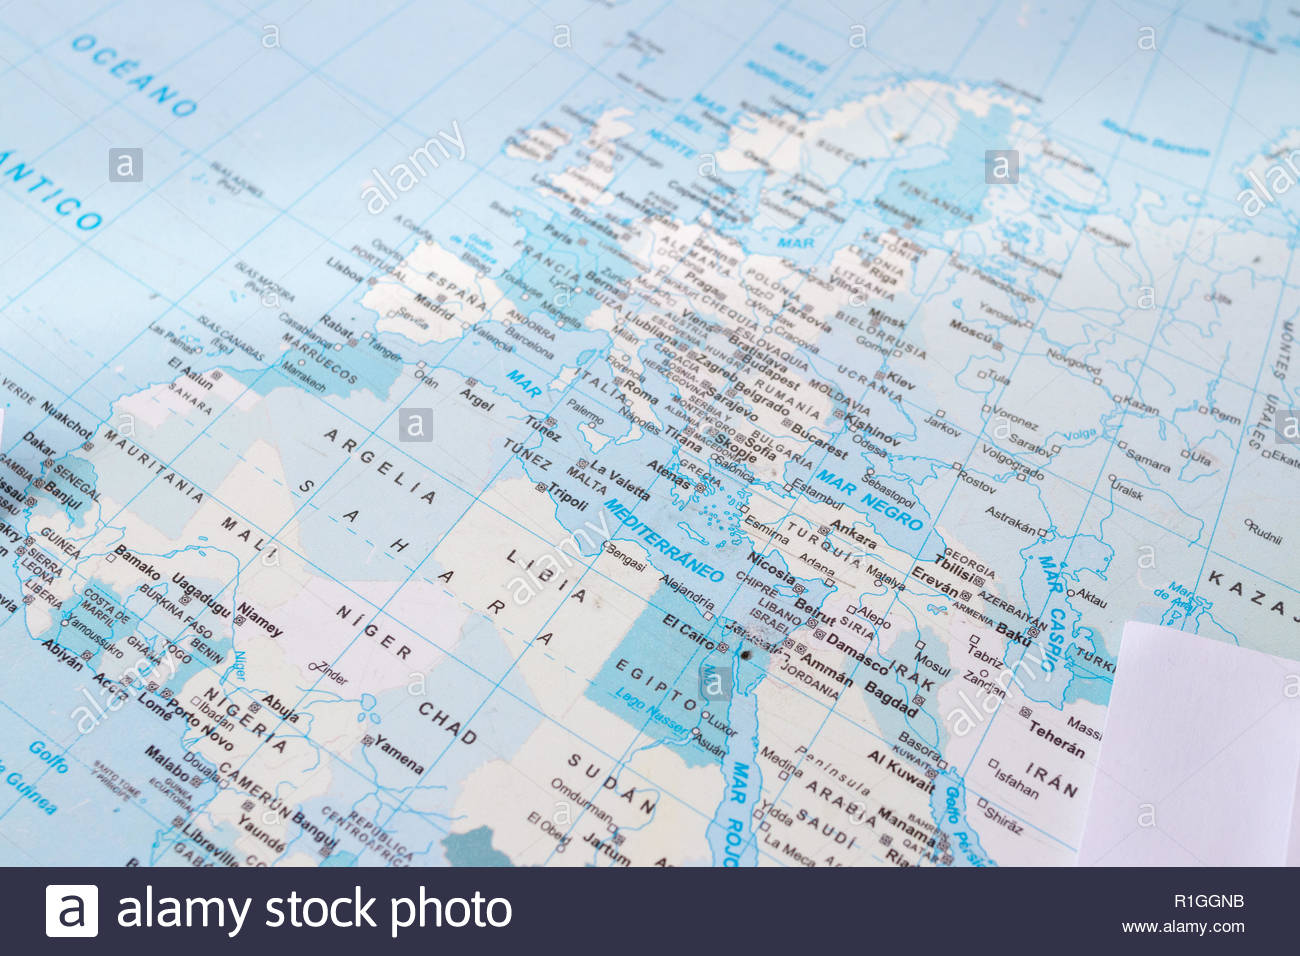 old school world map Stock Photo: 224713815 - Alamy